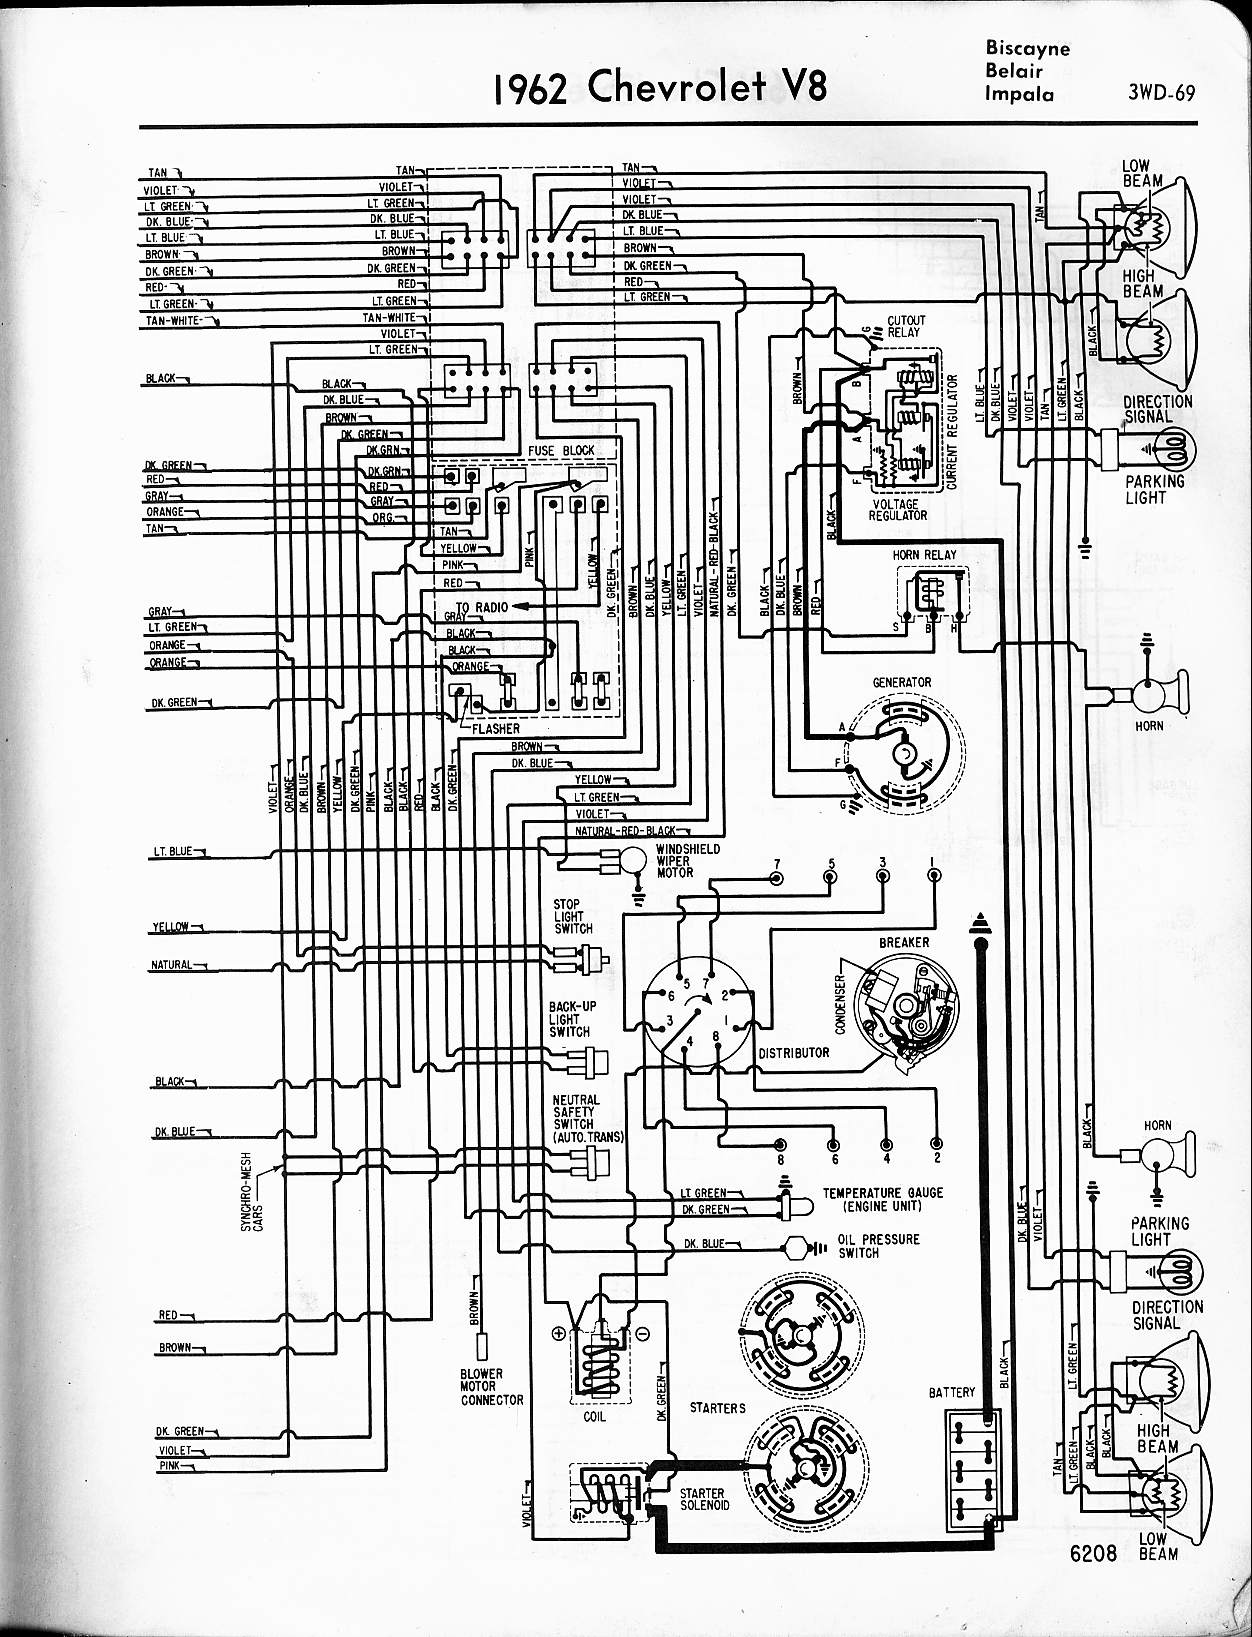 62 Chevy Impala Wiring Diagram Content Resource Of 69 Truck Harness 57 65 Diagrams Rh Oldcarmanualproject Com 1964 1962 Chevrolet